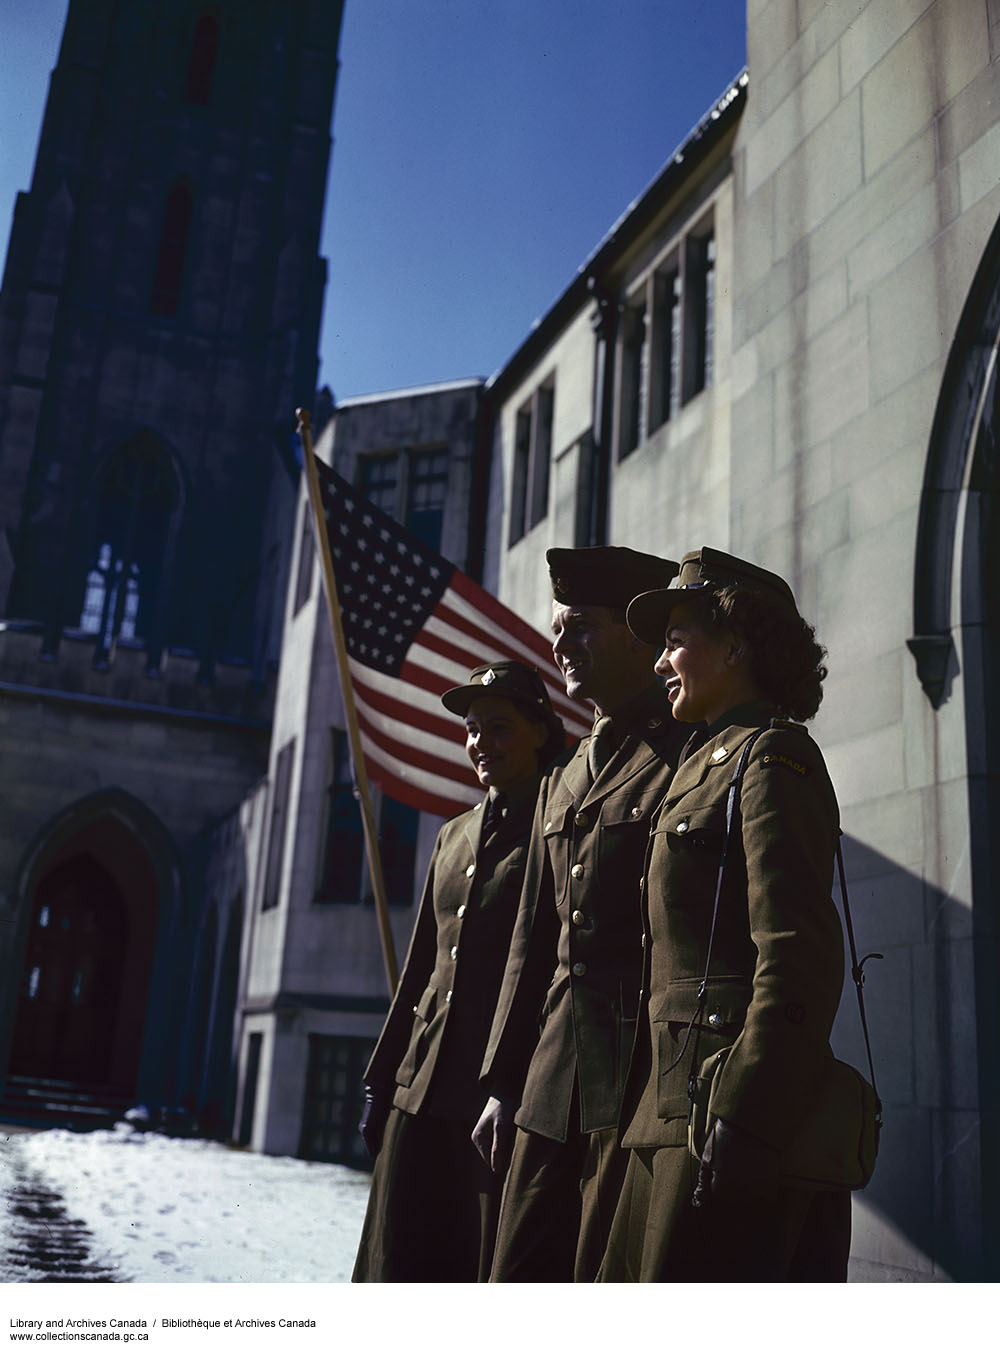 Two CWAC and a U.S. Sgt. leave church in Washington, D.C. (item 1)